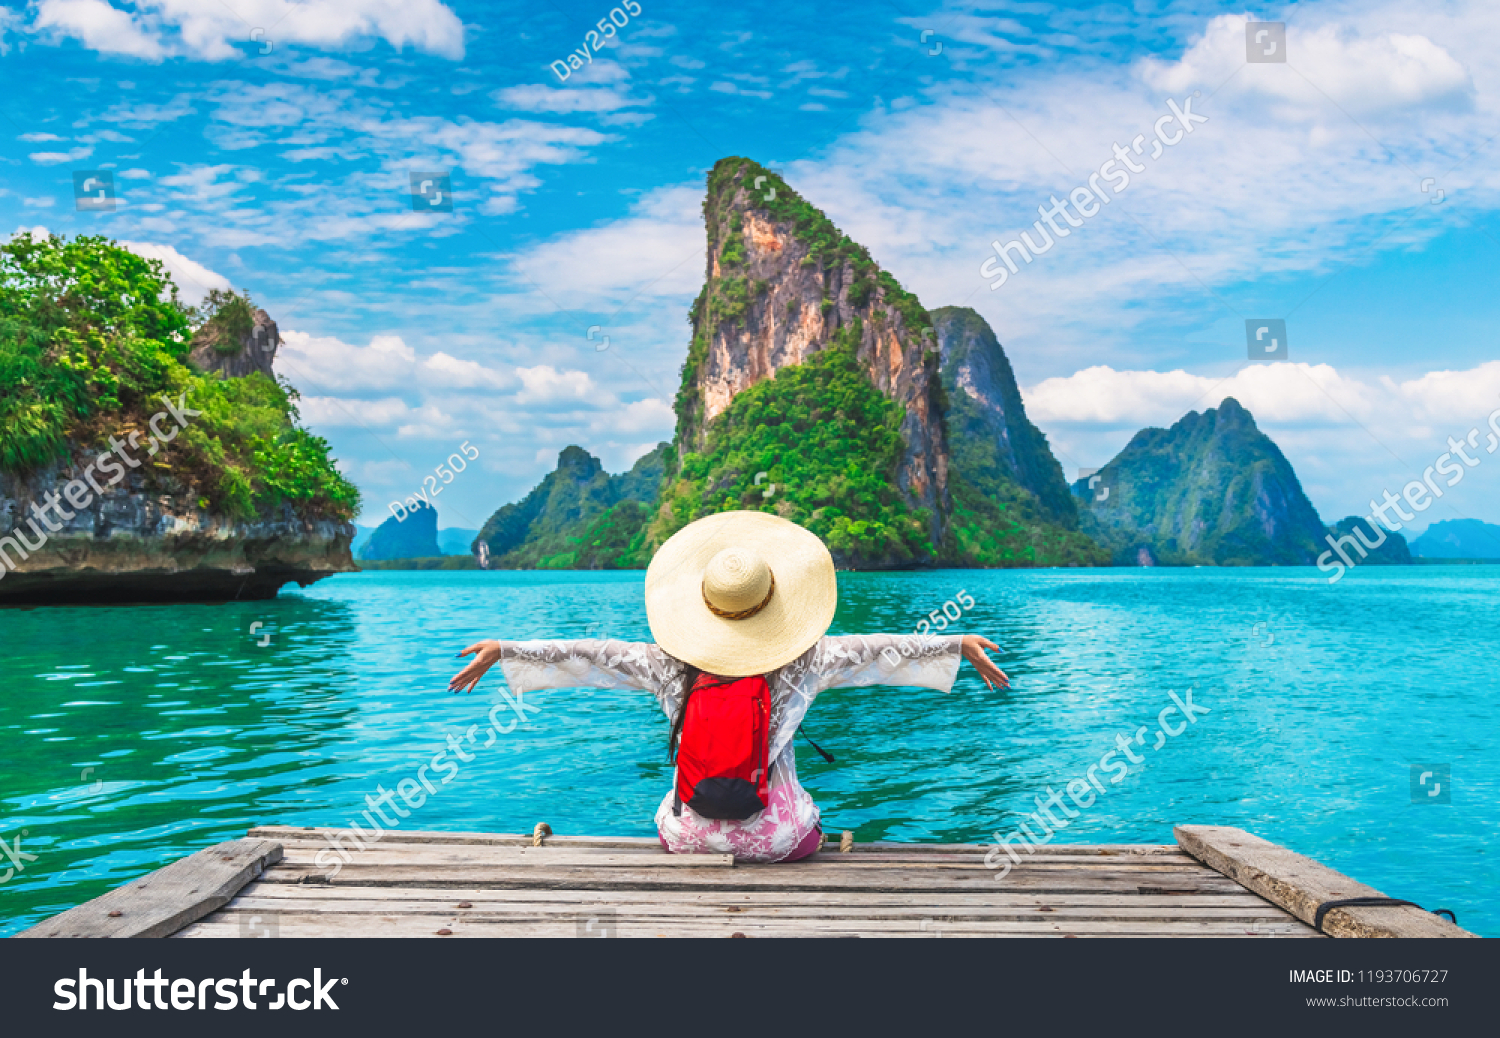 Traveler woman joy fun relaxing on wood bridge looking beautiful destination island, Phang-Nga bay, Travel adventure Thailand, Tourism natural scenic landscape Asia, Tourist on summer holiday vacation #1193706727